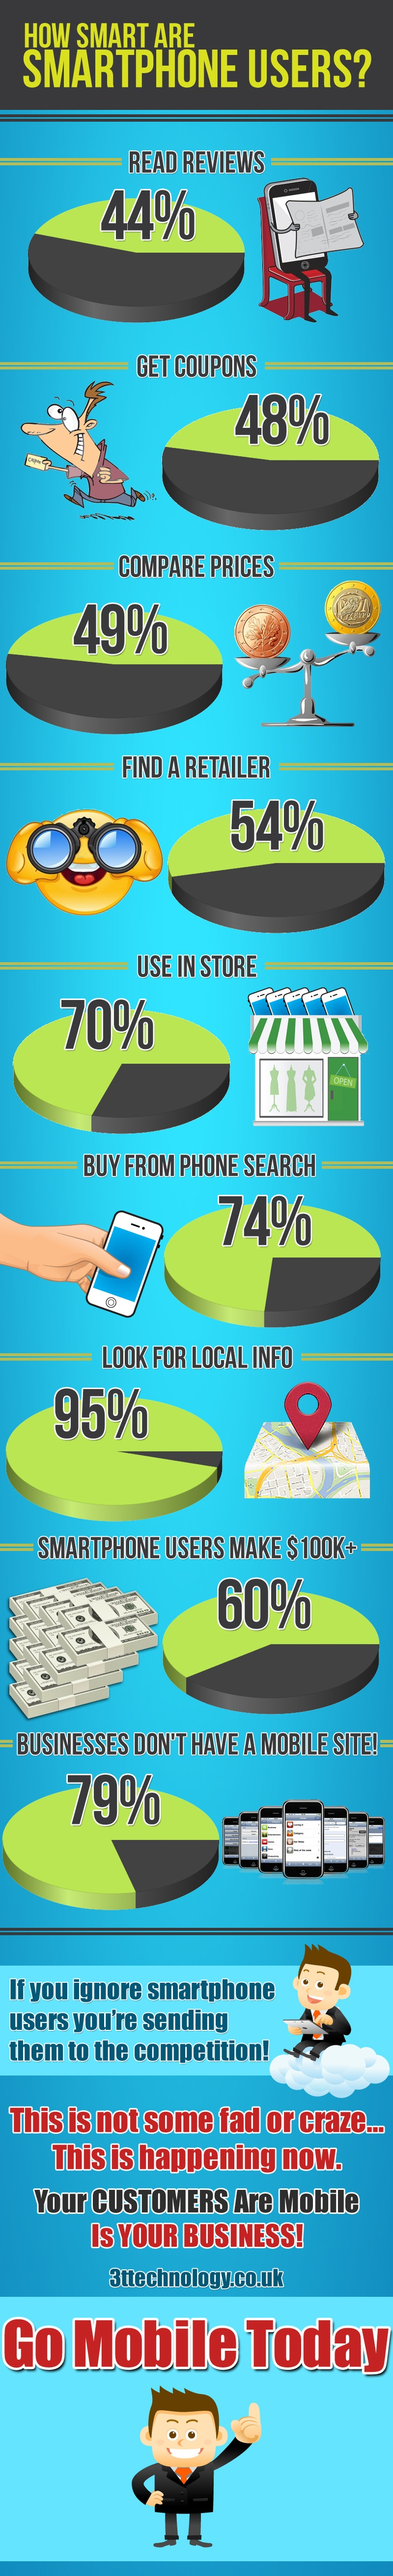 """Mobile Optimized Website Features & Functions. Integrated social networks like YouTube, Twitter, Facebook & LinkedIn. Easy one touch """"Tap To Call Functionality"""".   Google maps integrated.  Tap To EMail  Upto 5 mobile pages with every basic mobile website."""